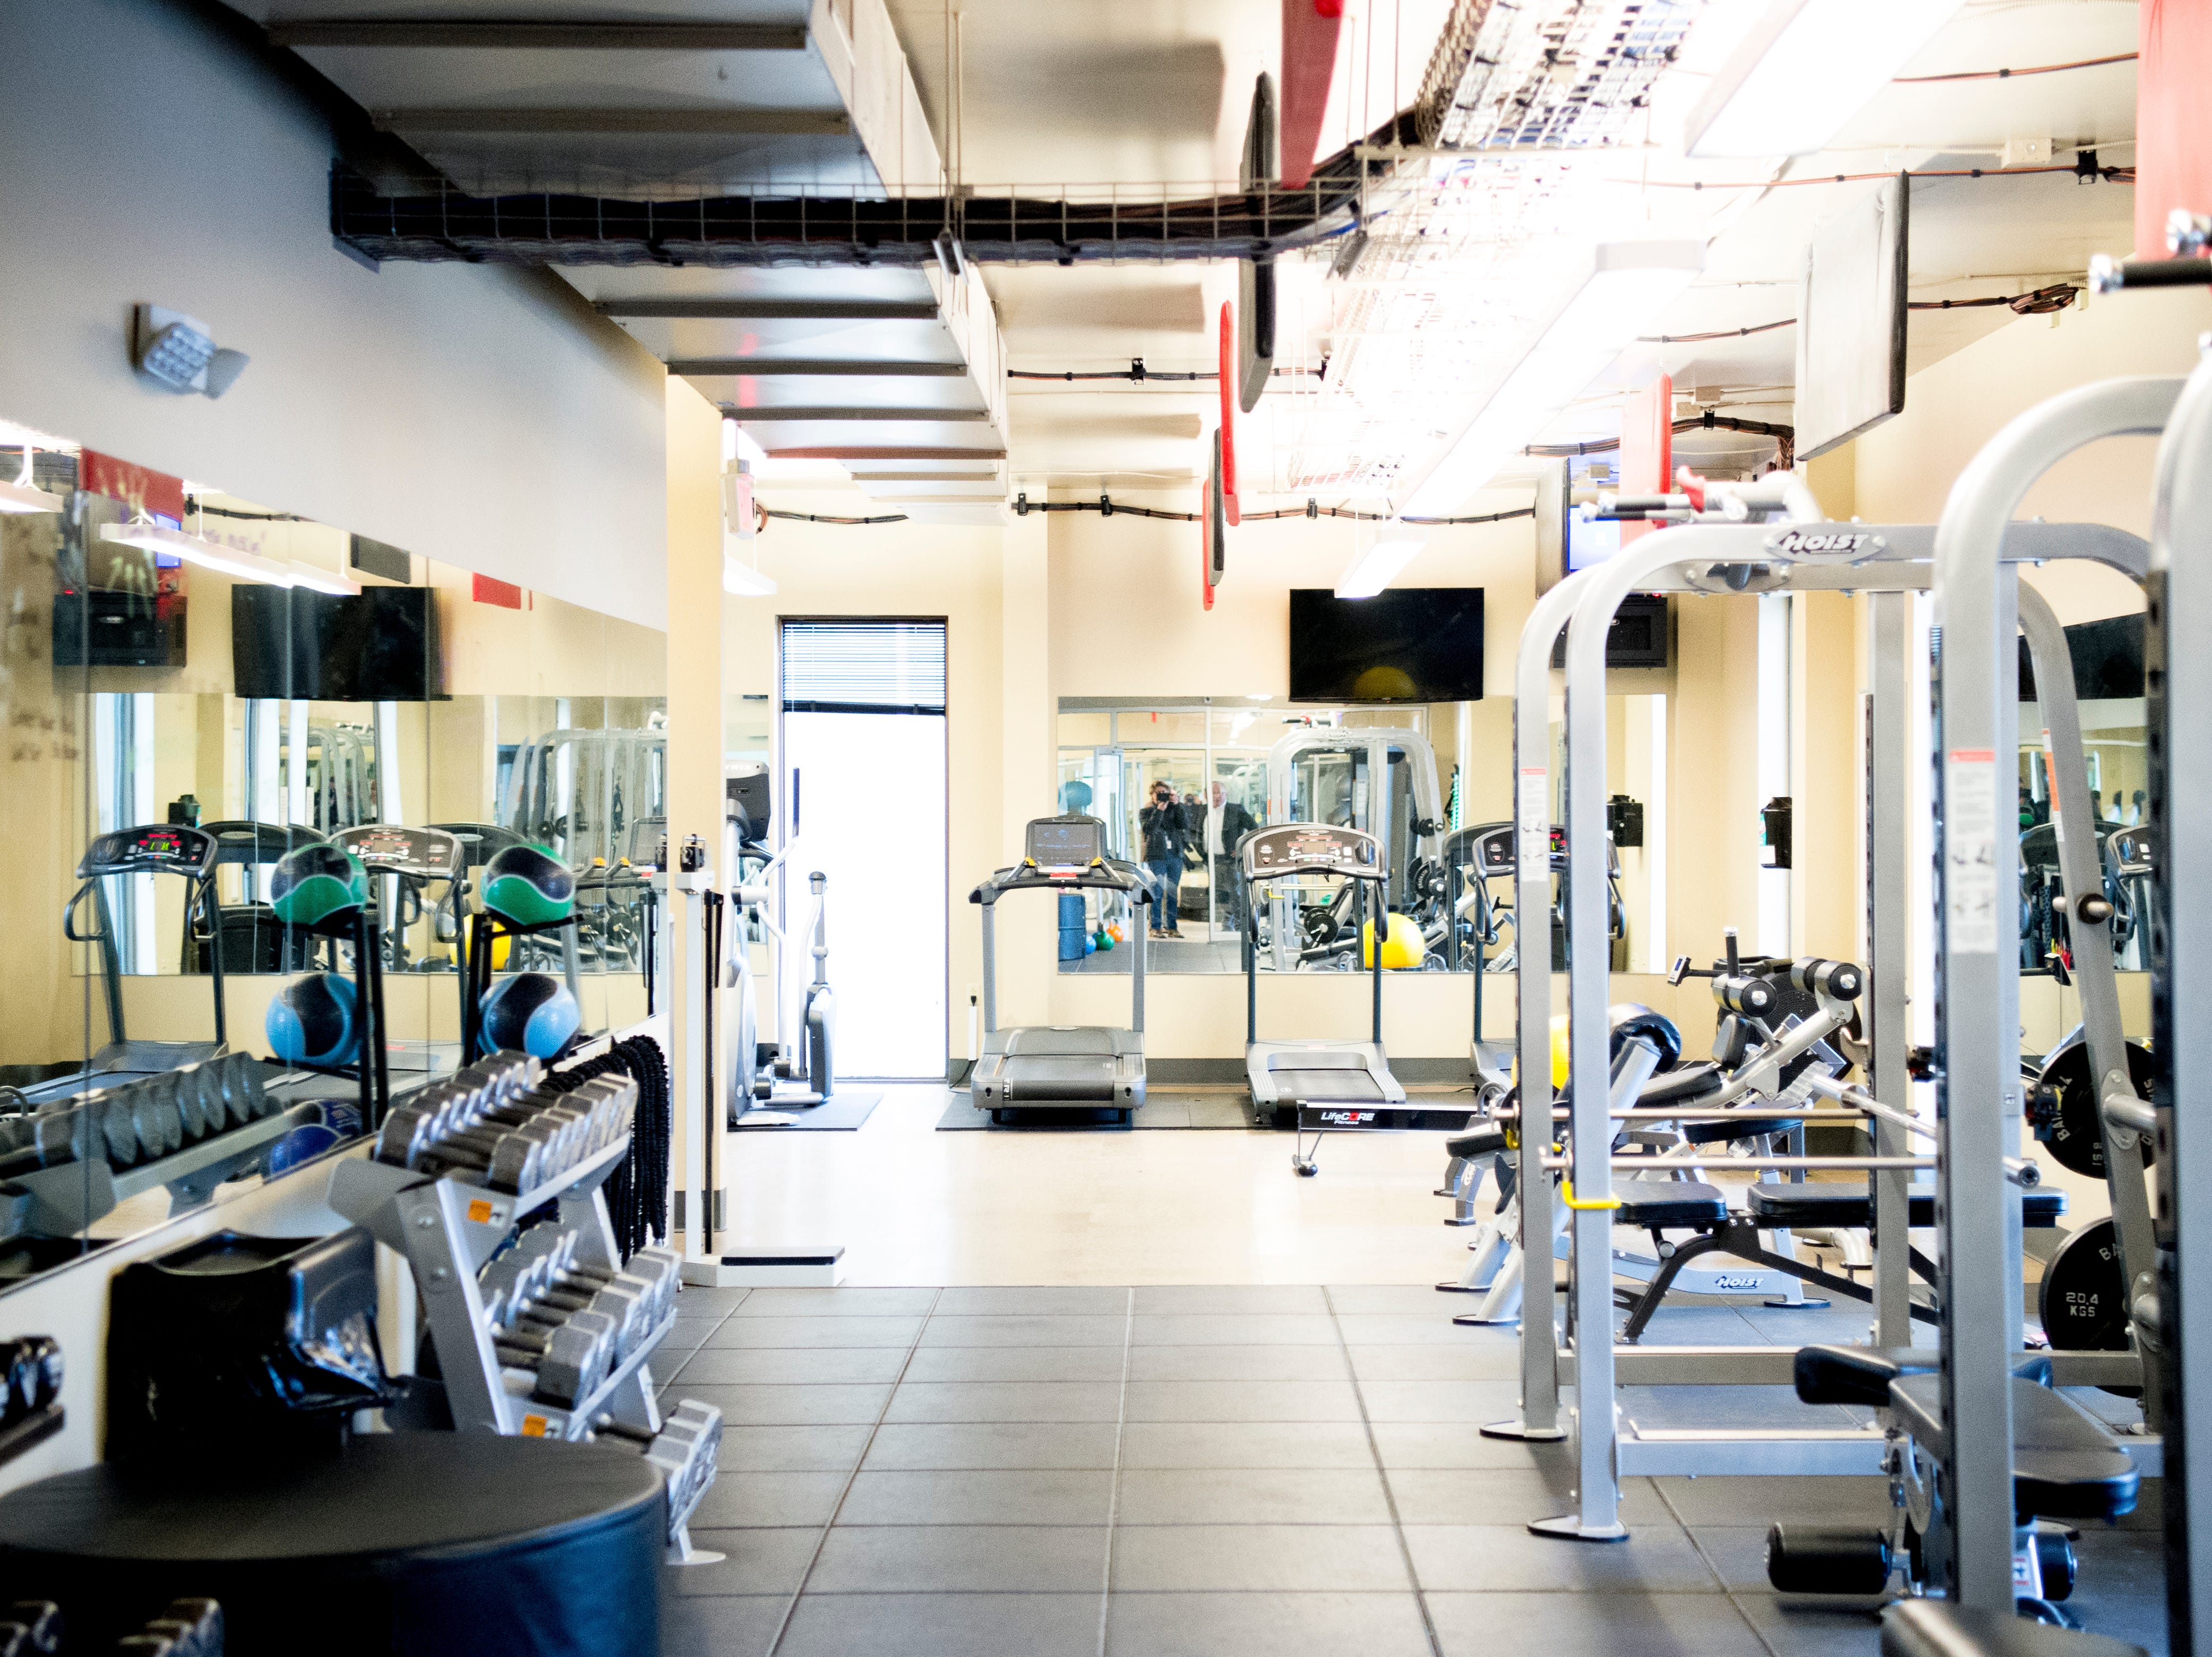 A fully-equipped gym also has classes and a trainer at the Cellular Sales headquarters on 9040 Executive Park Drive in West Knoxville, Tennessee on Wednesday, January 16, 2019. An authorized agent of Verizon Wireless, Cellular Sales specializes in retail and support for over 700 of Verizon stores in 42 states.